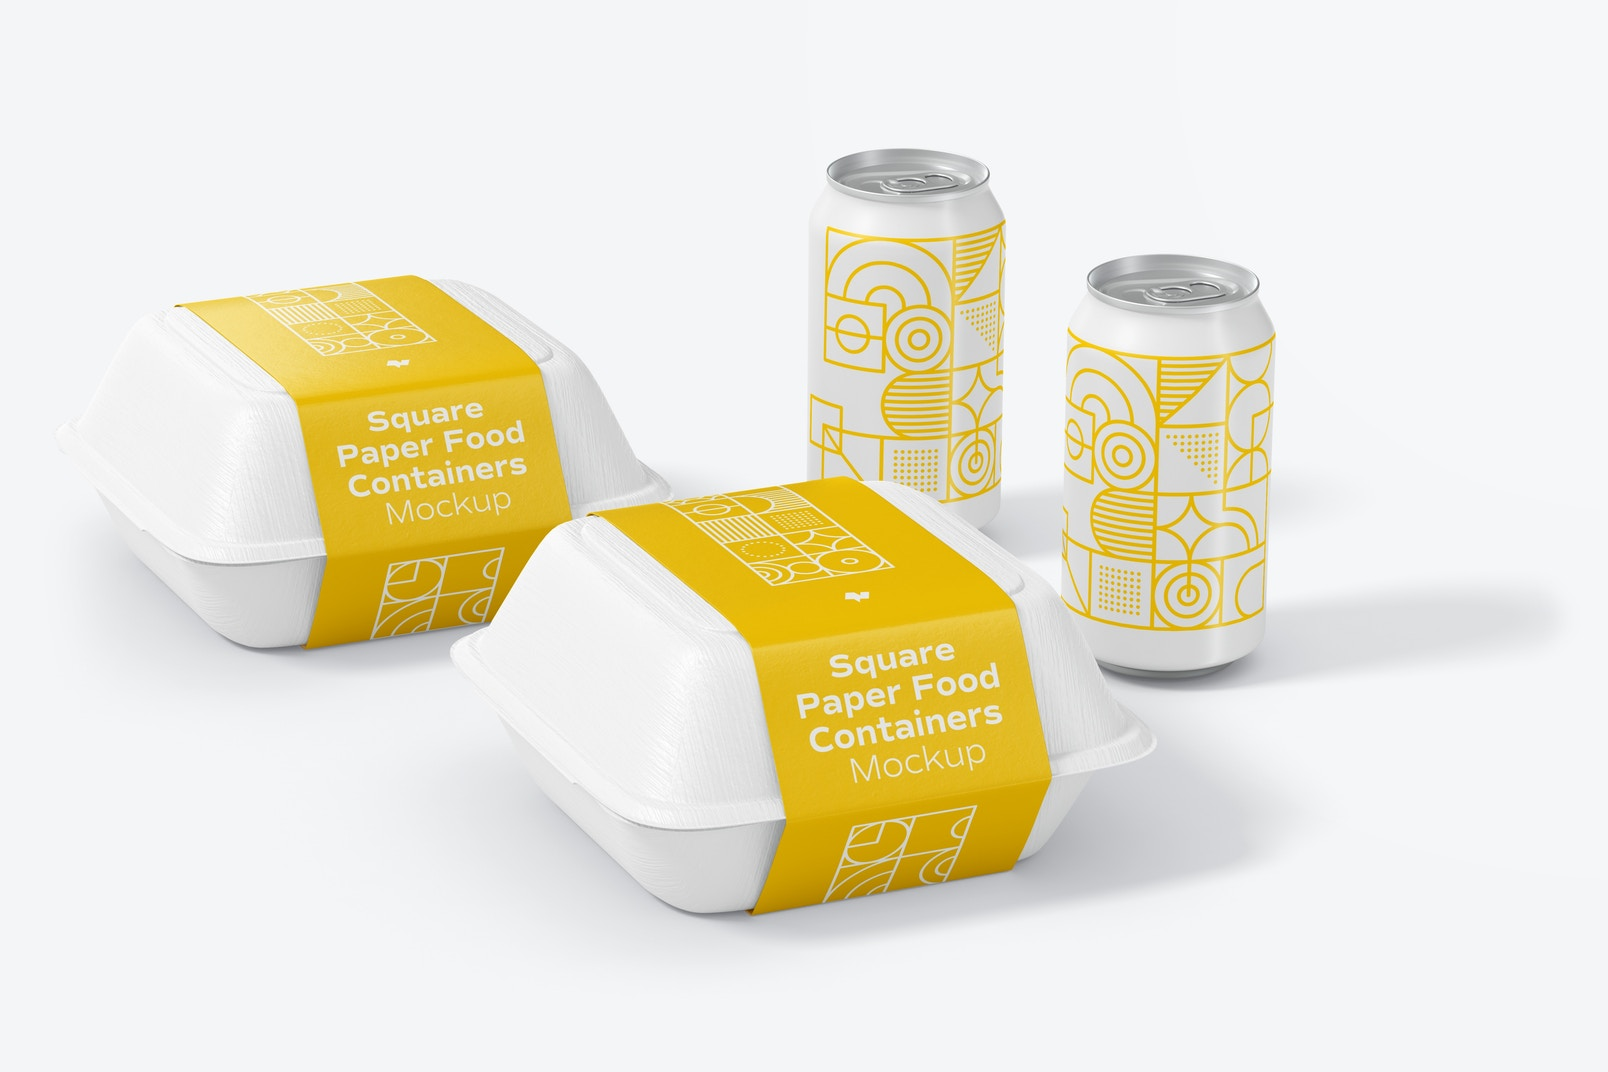 Square Paper Food Containers Mockup with Can